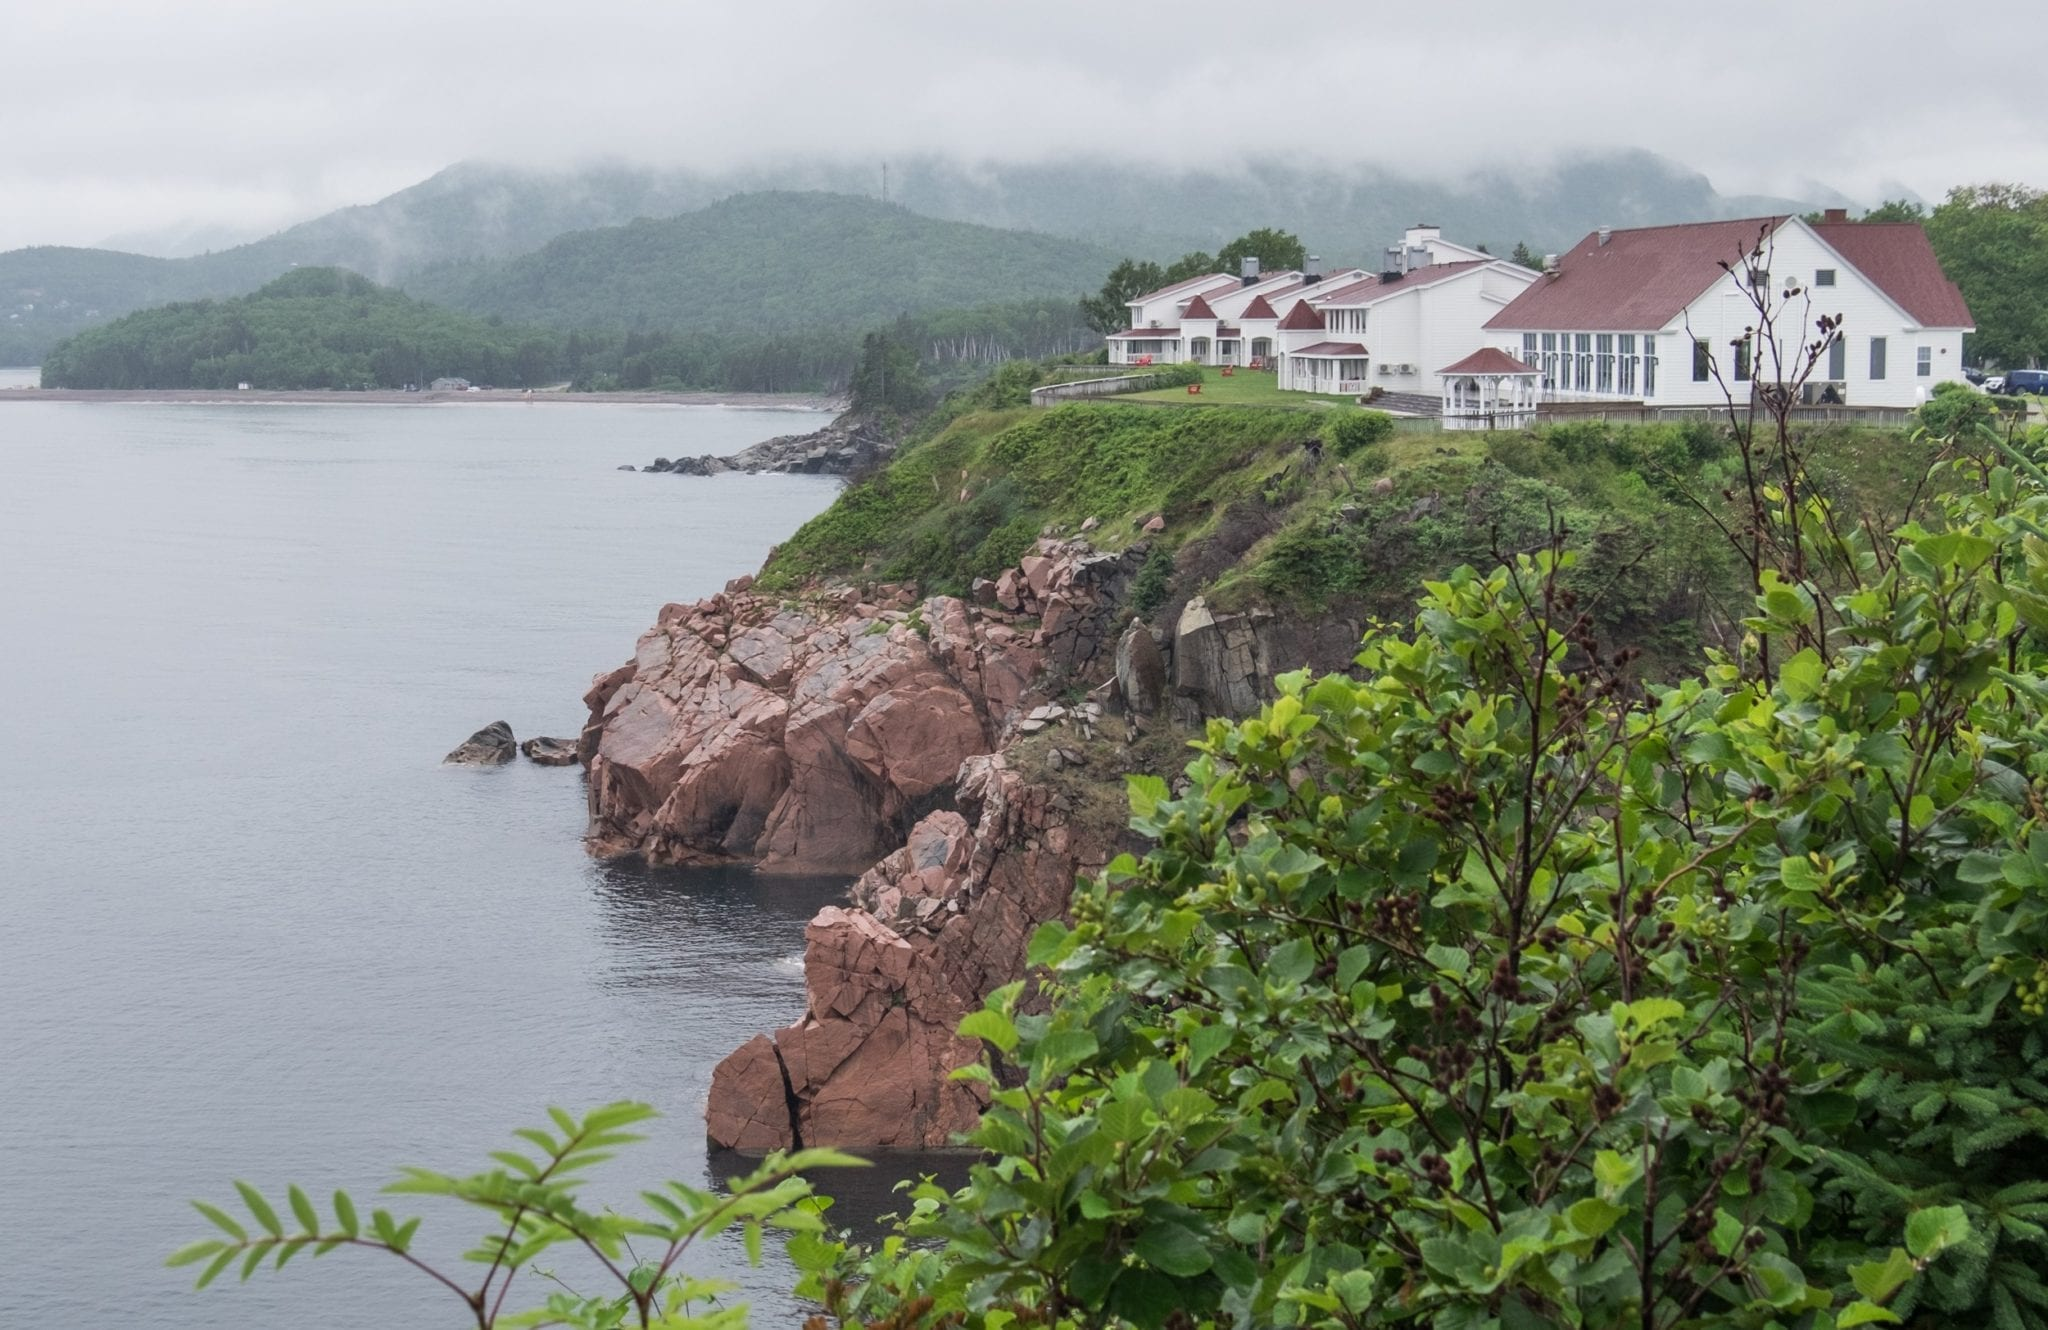 White cottages on top of red-brown cliffs among green vegetation, looking mysterious in the mist.